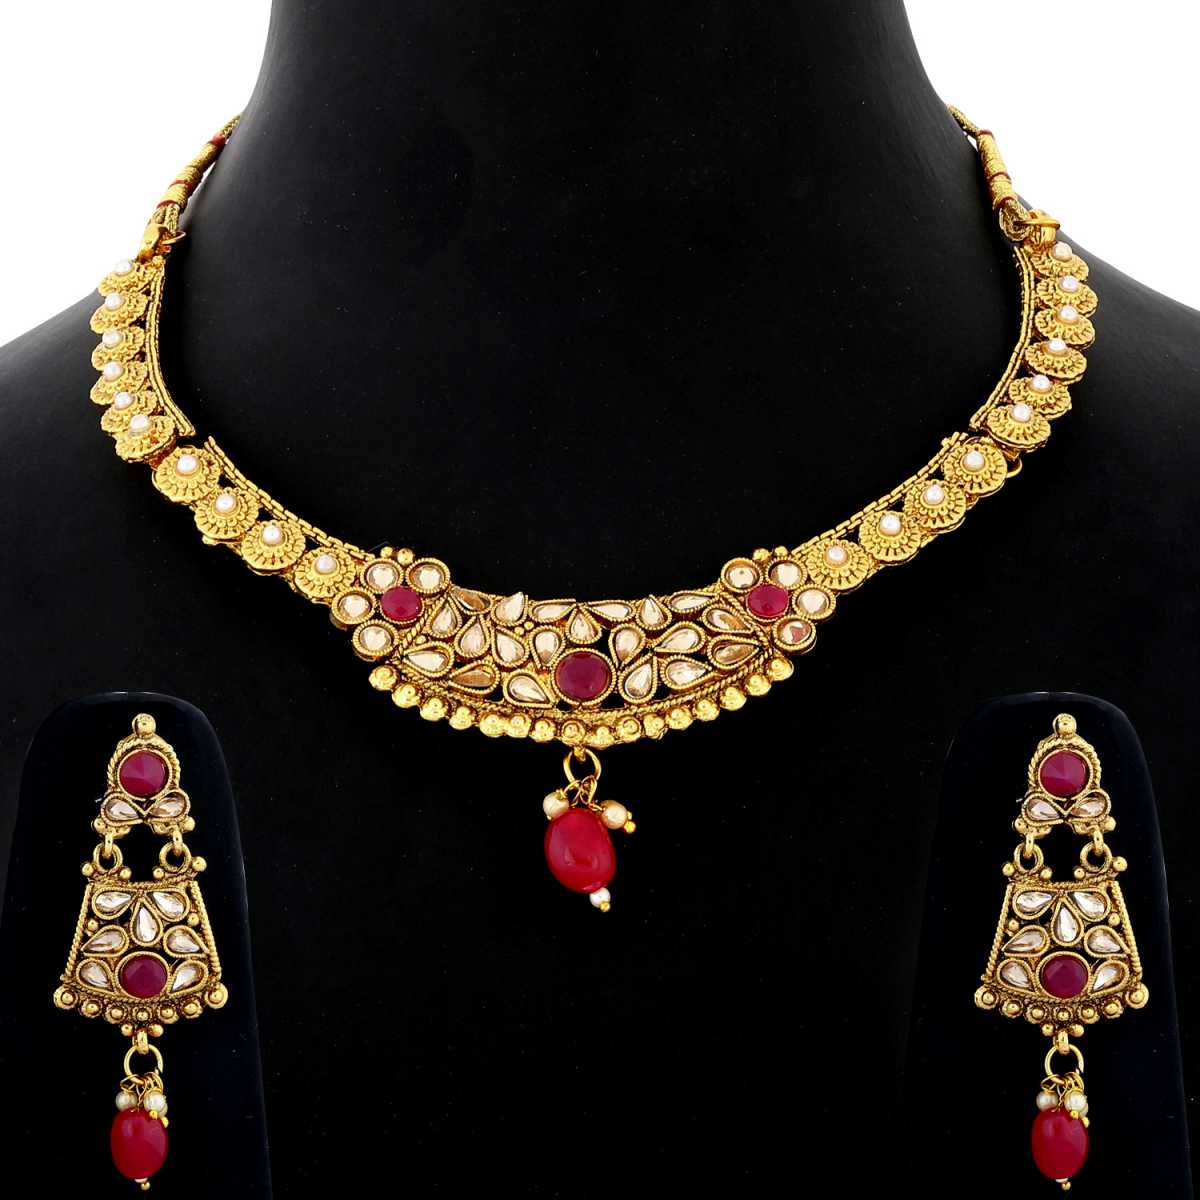 Silver Shine Exclusive Traditional Gold Plated Red Kundan stone studded Bead Drop Designer Bridal Wedding Necklace Jewellery Set for Girls And women